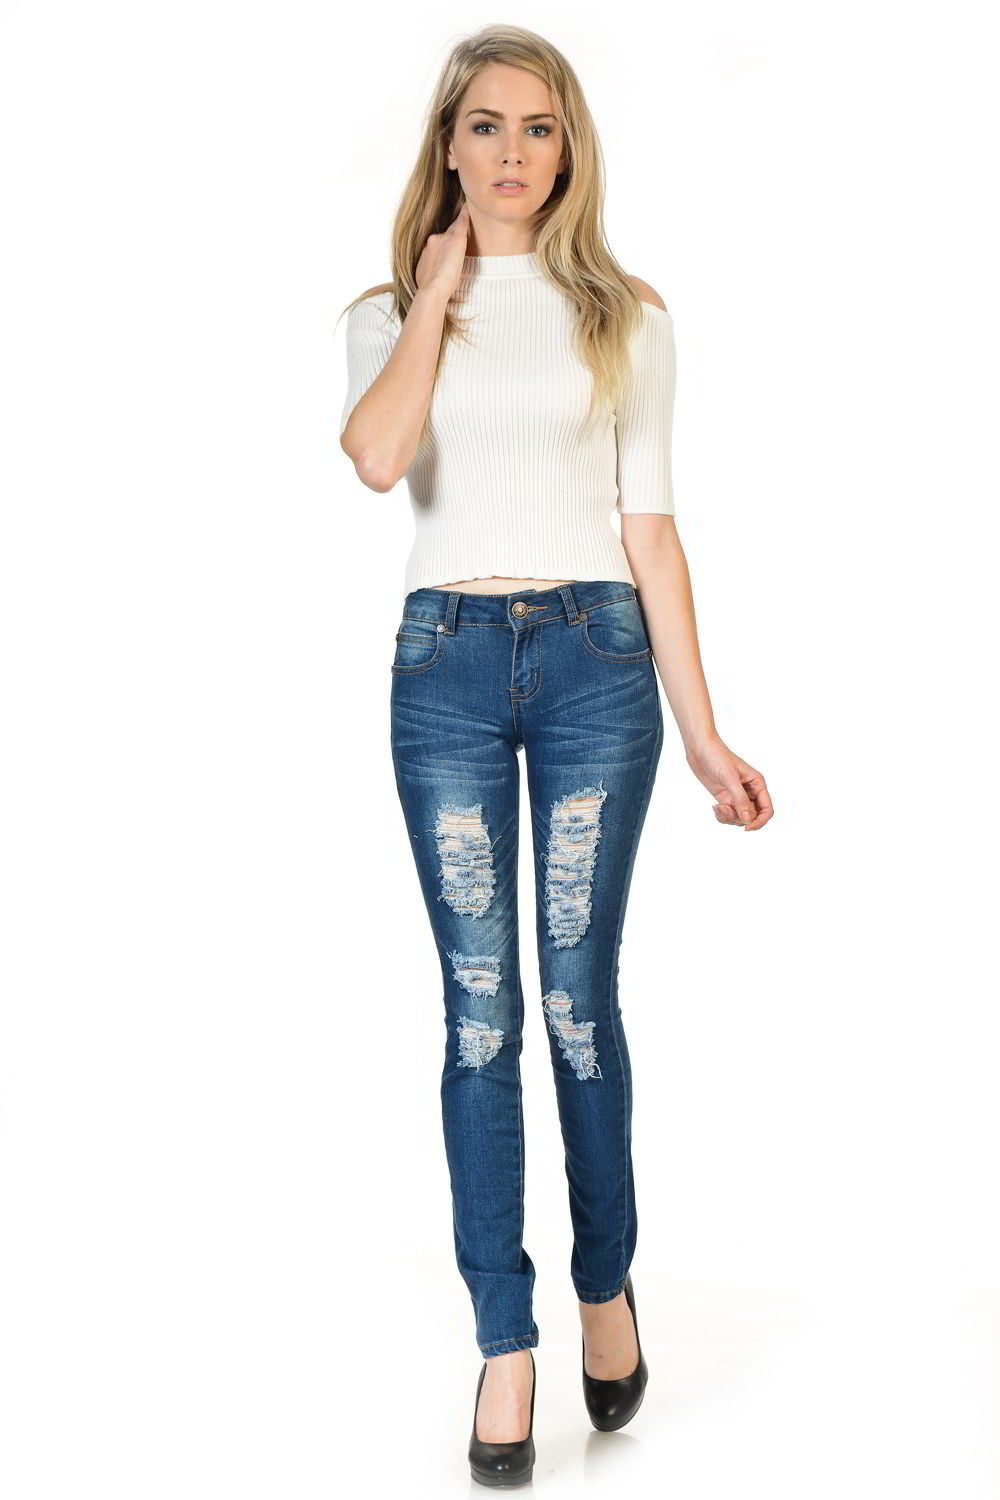 Sweet Look Premium Edition Women's Jeans - Push Up - Style WY5026E-R